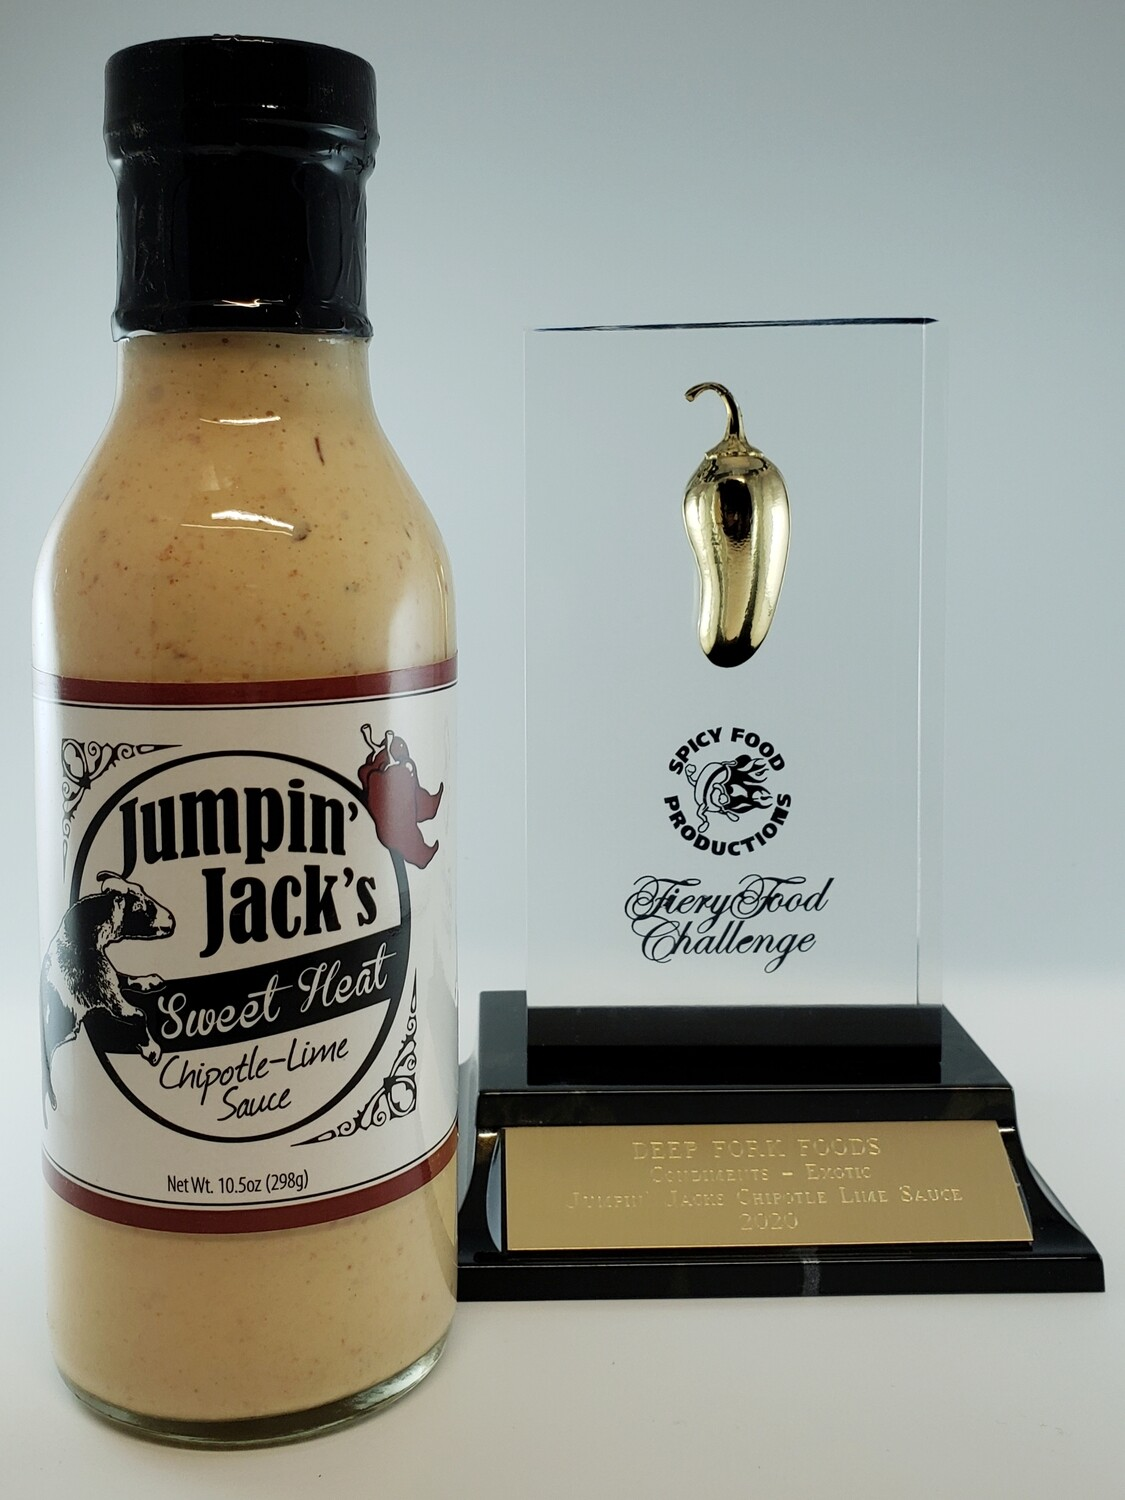 Jumpin' Jack's Chipotle-Lime Sauce